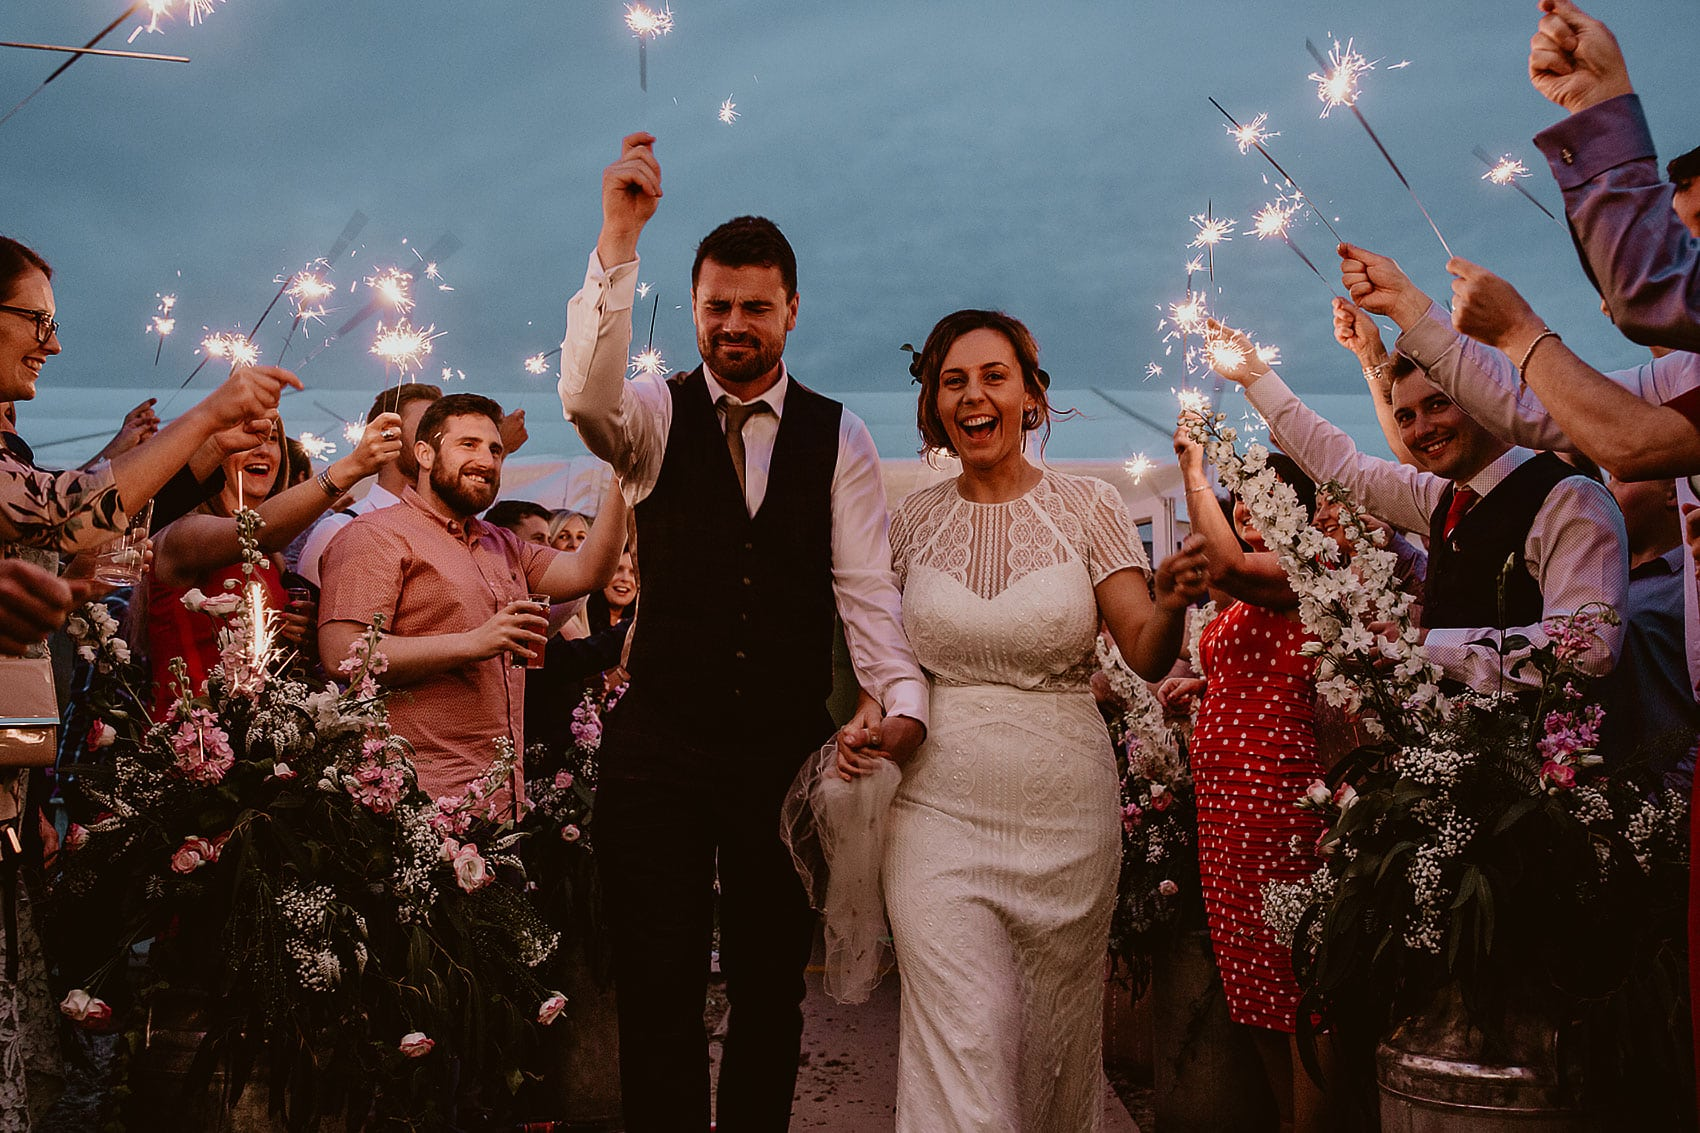 garden wedding sparklers Yorkshire photography